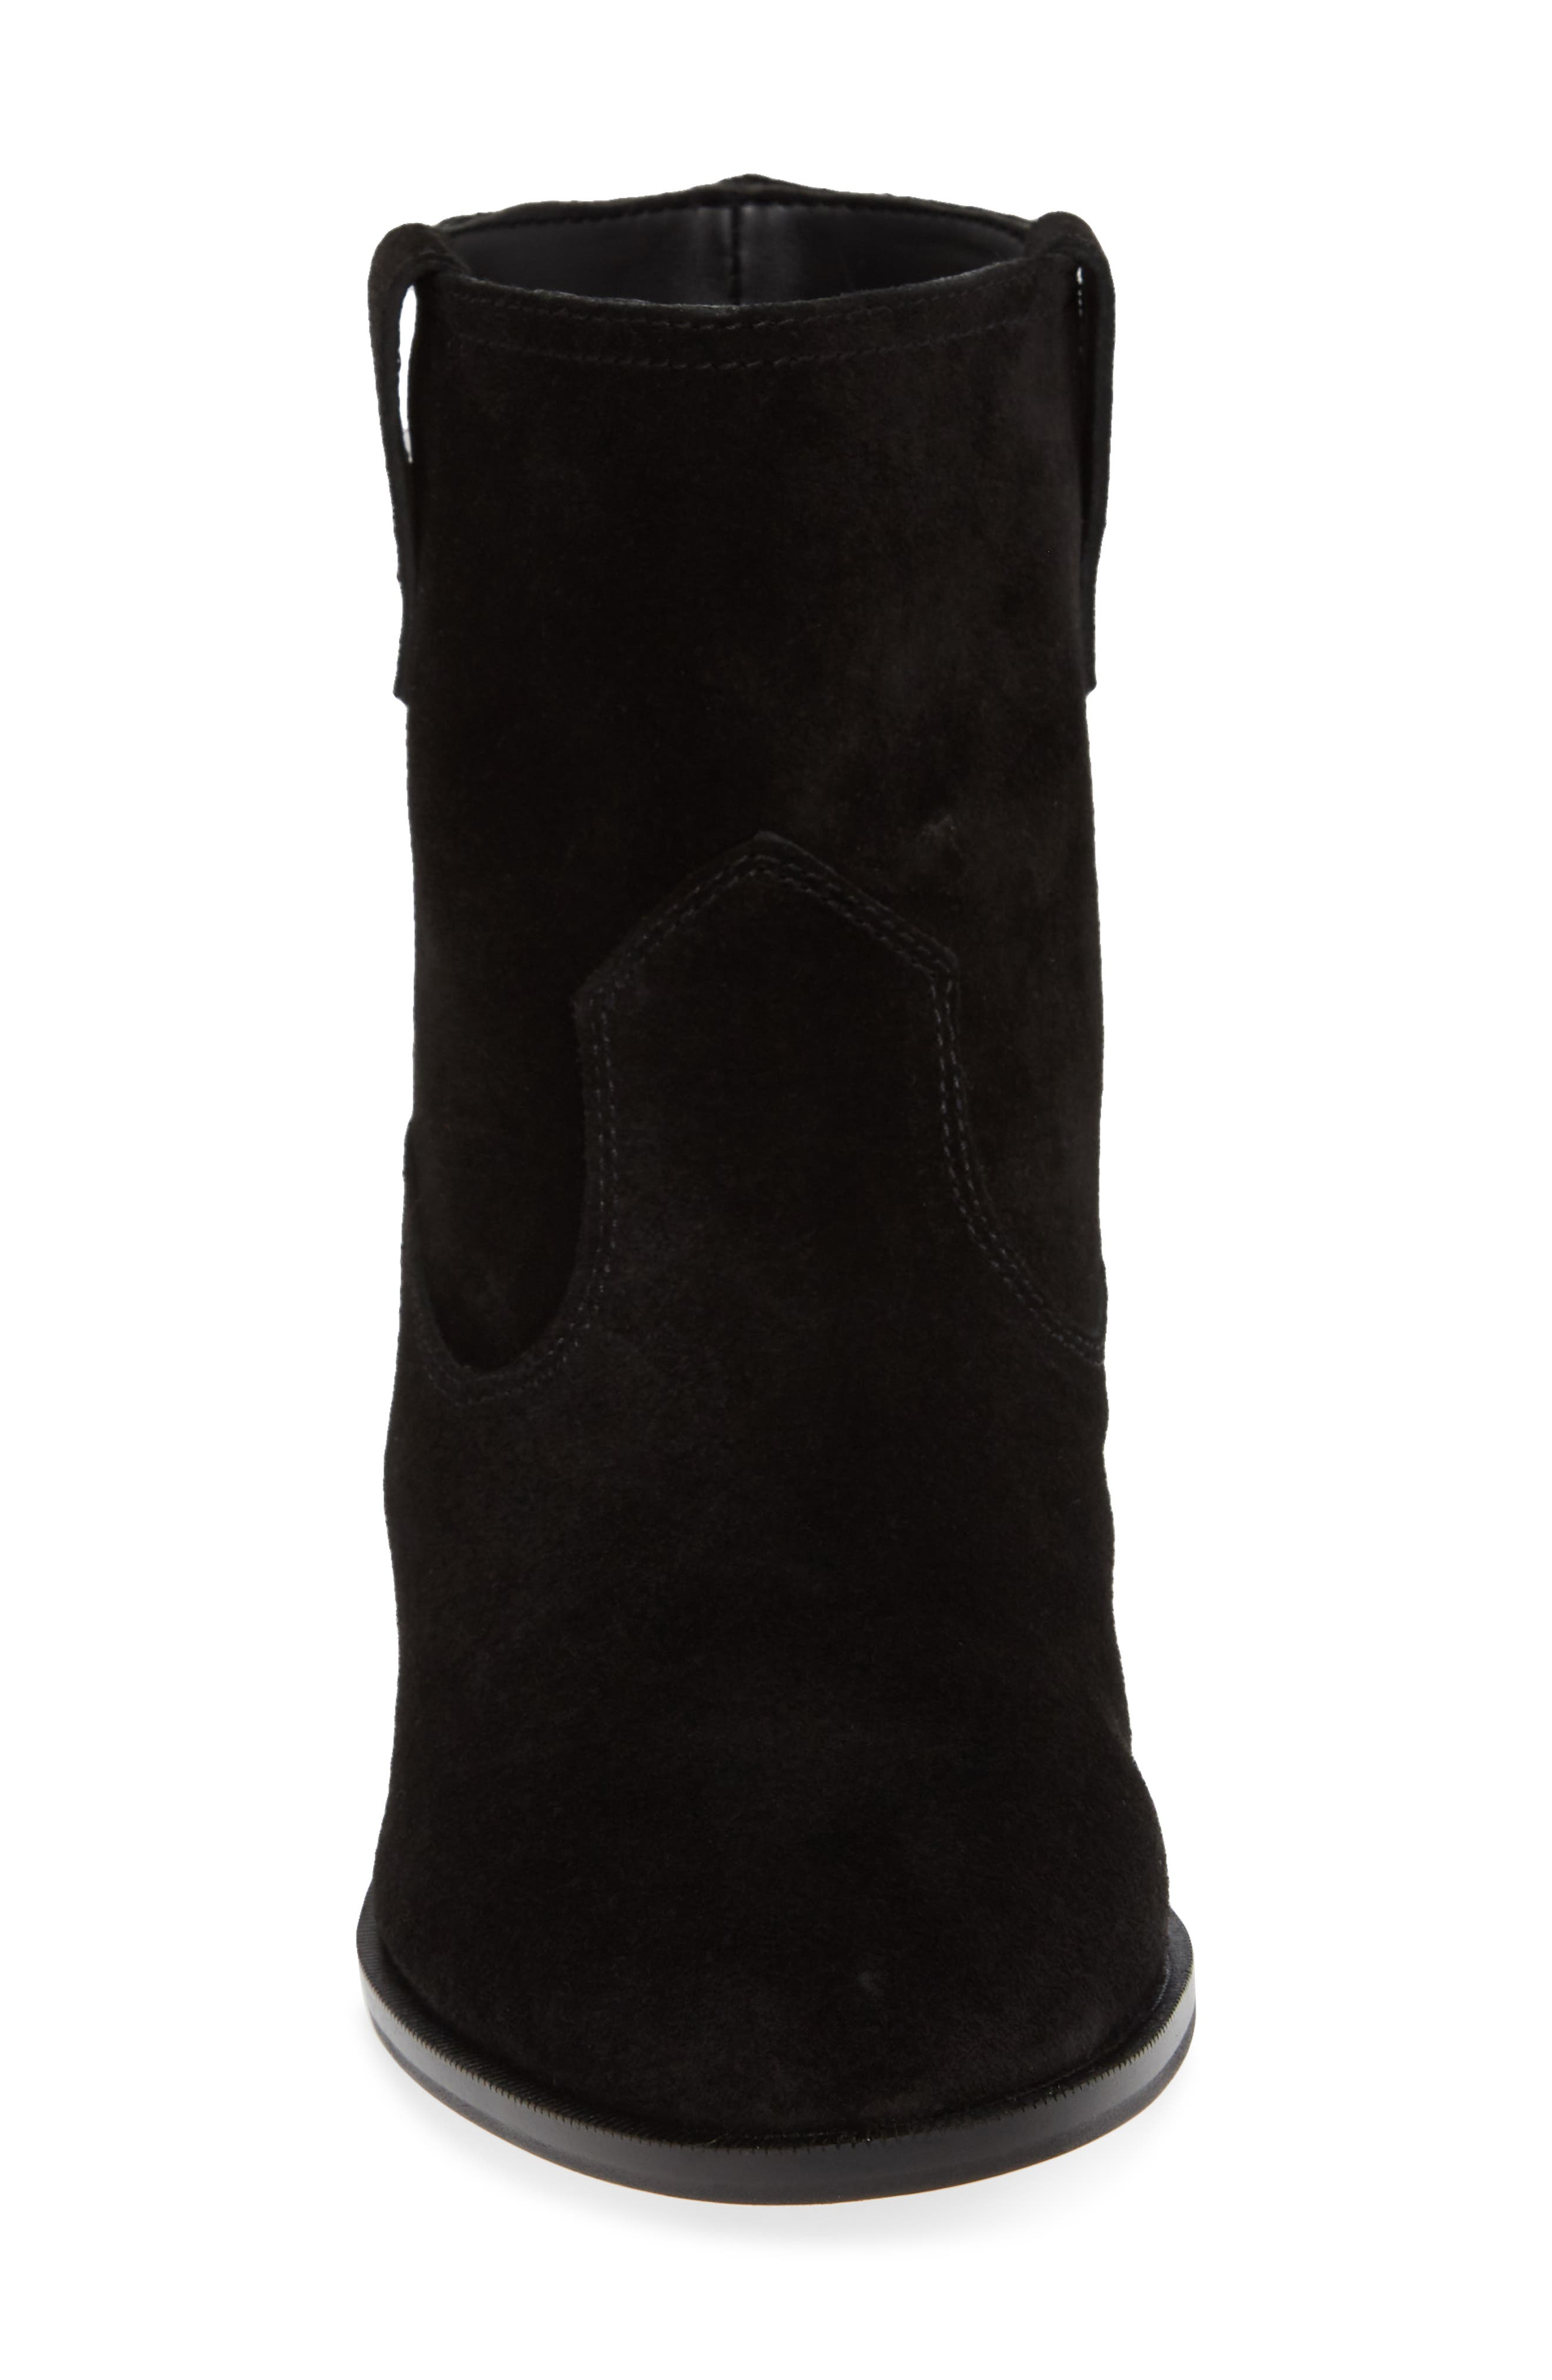 Chasidy Bootie,                             Alternate thumbnail 4, color,                             BLACK SUEDE